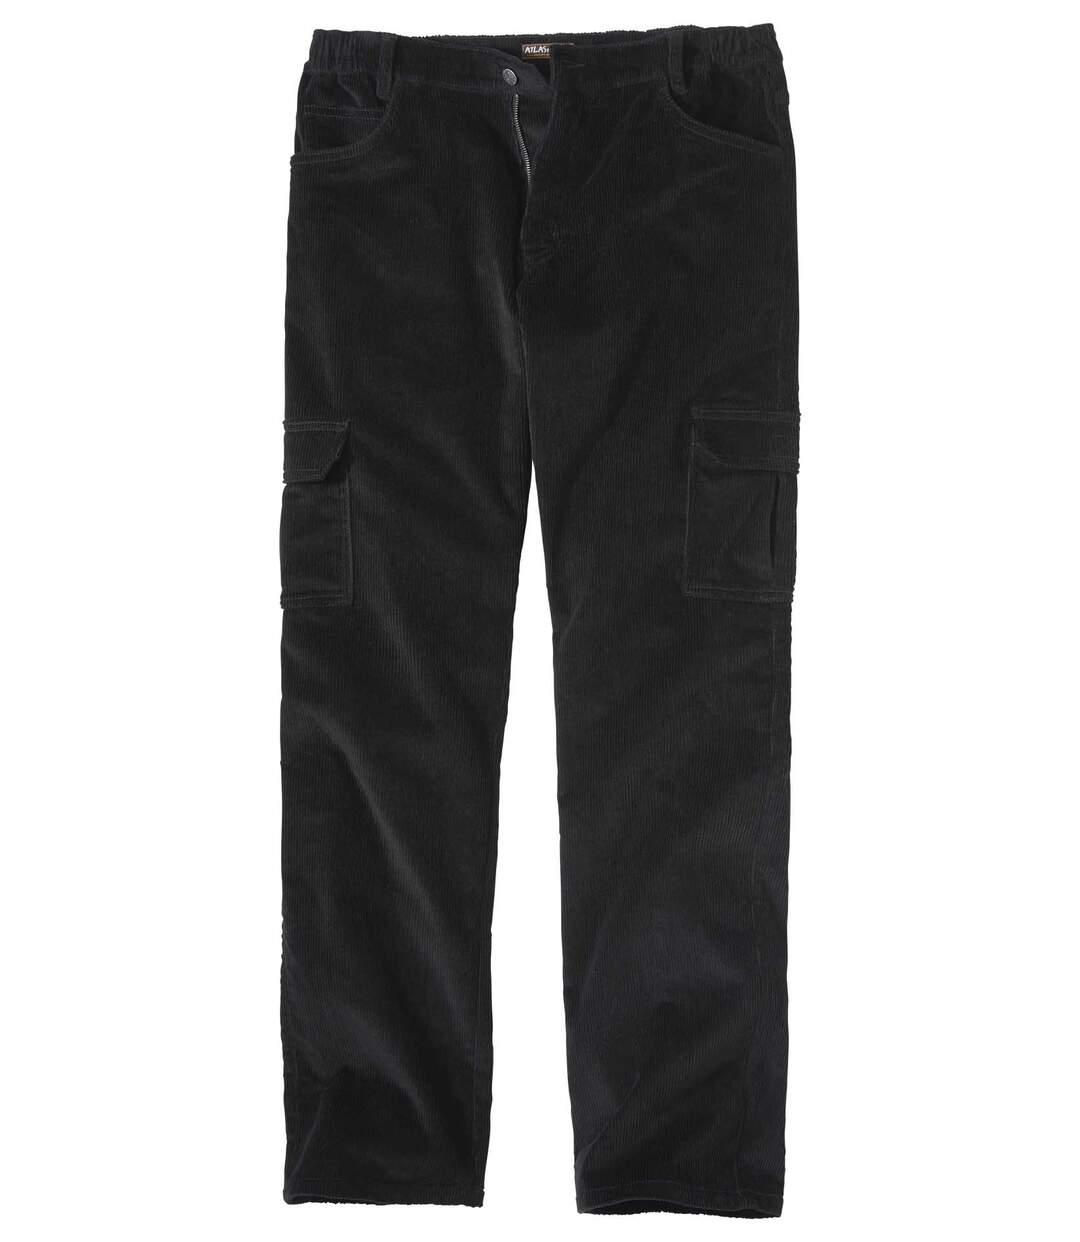 Men's Black Corduroy Cargo Trousers - Stretch Comfort